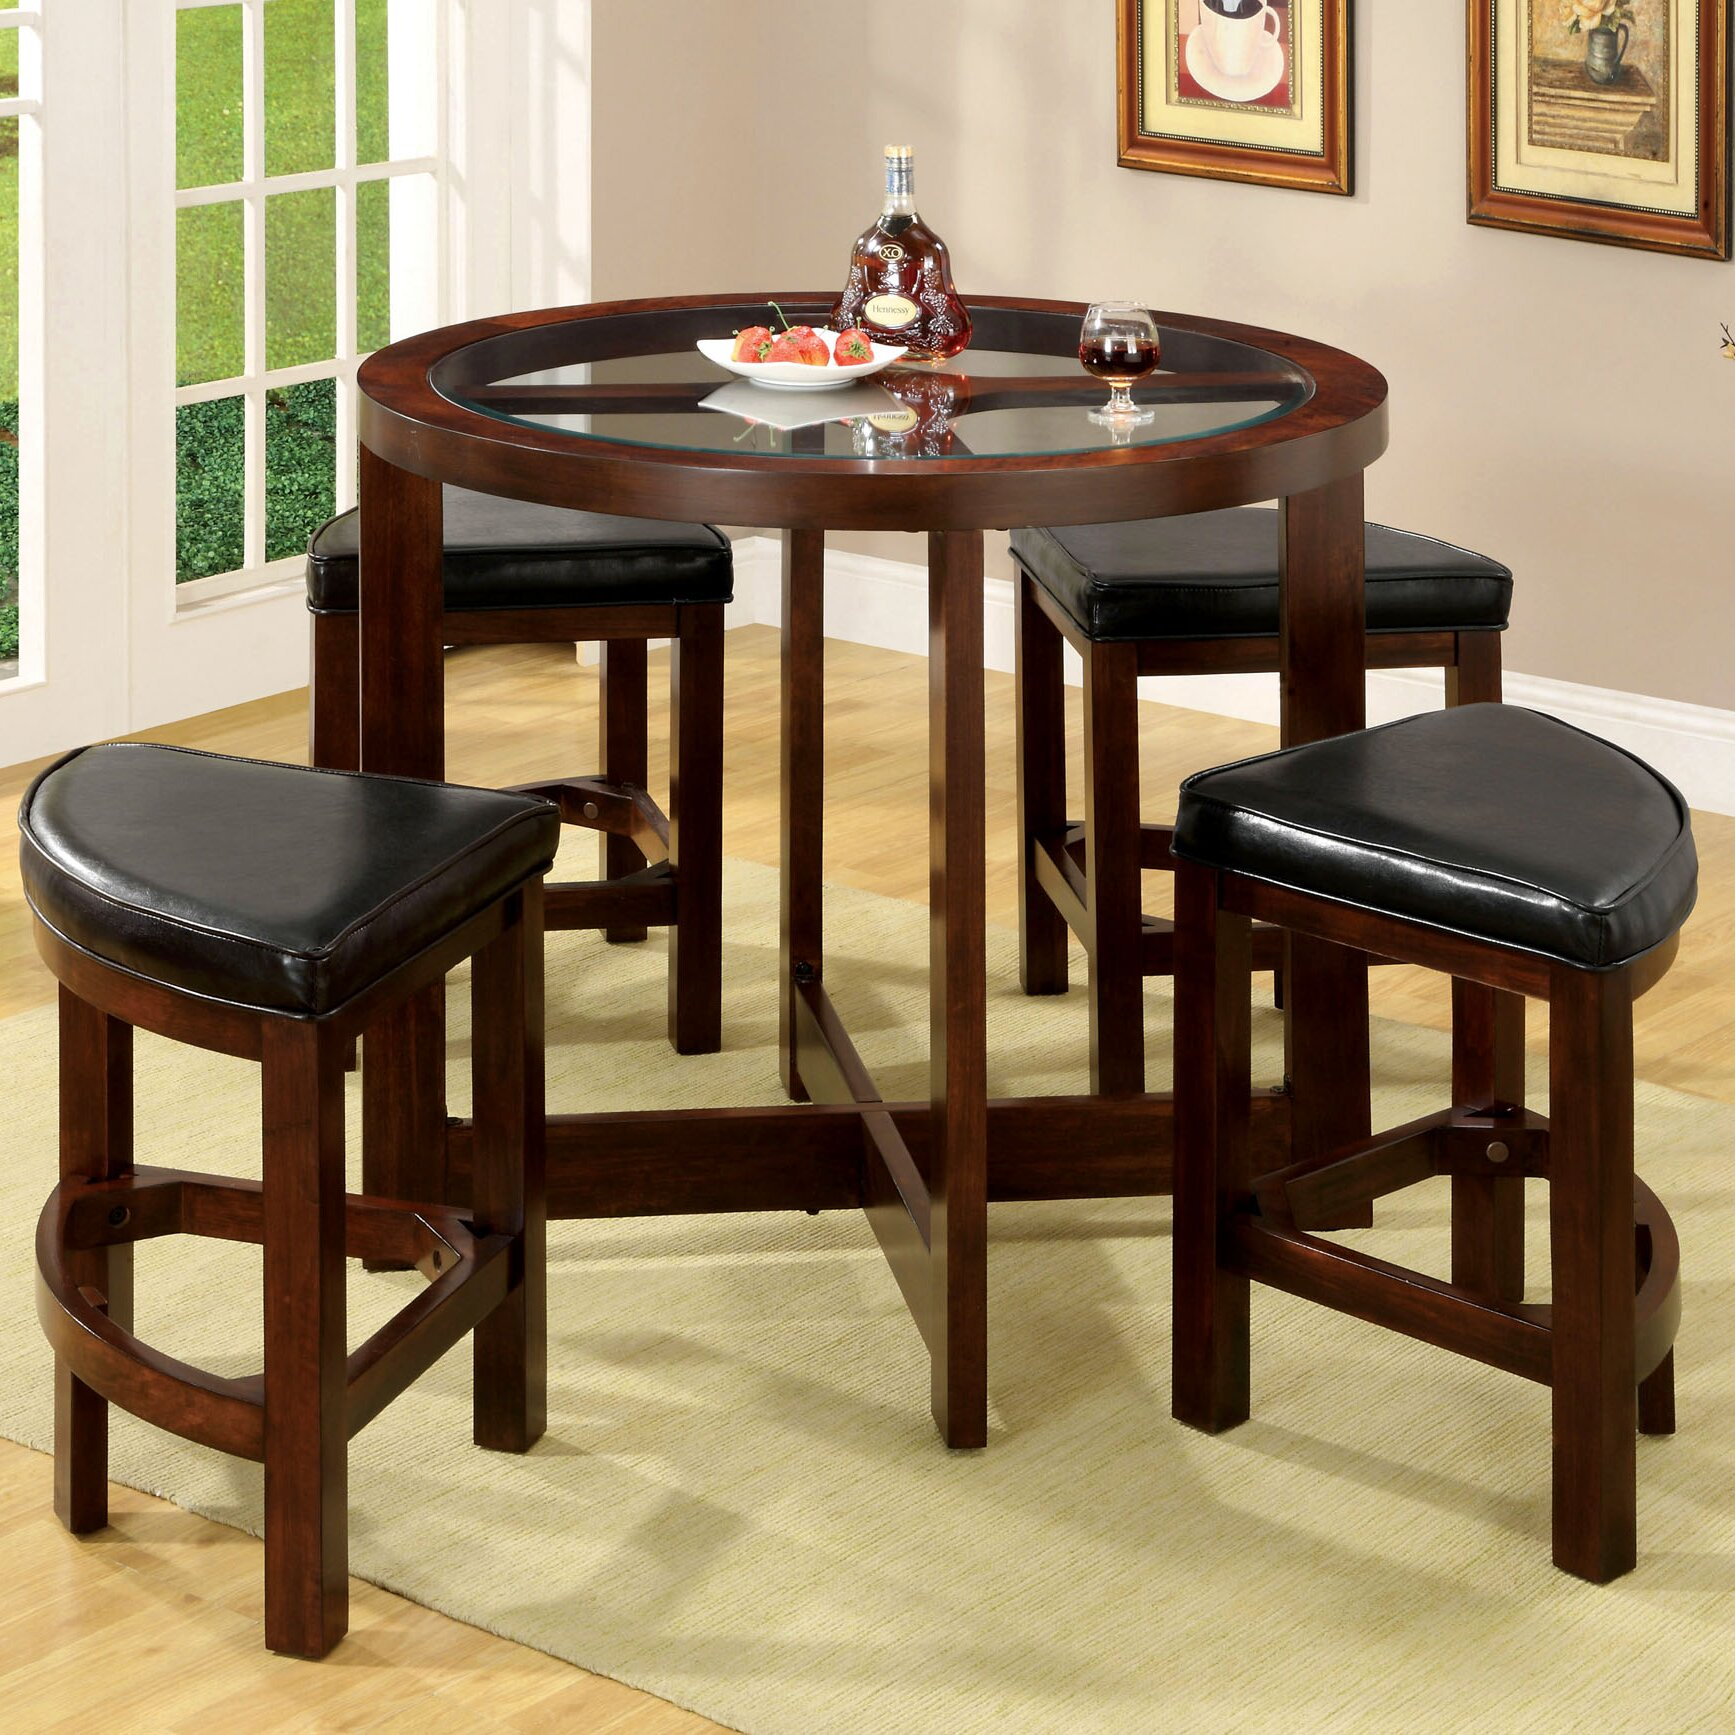 Kitchen bar table sets - Alchemist 5 Piece Counter Height Pub Table Set